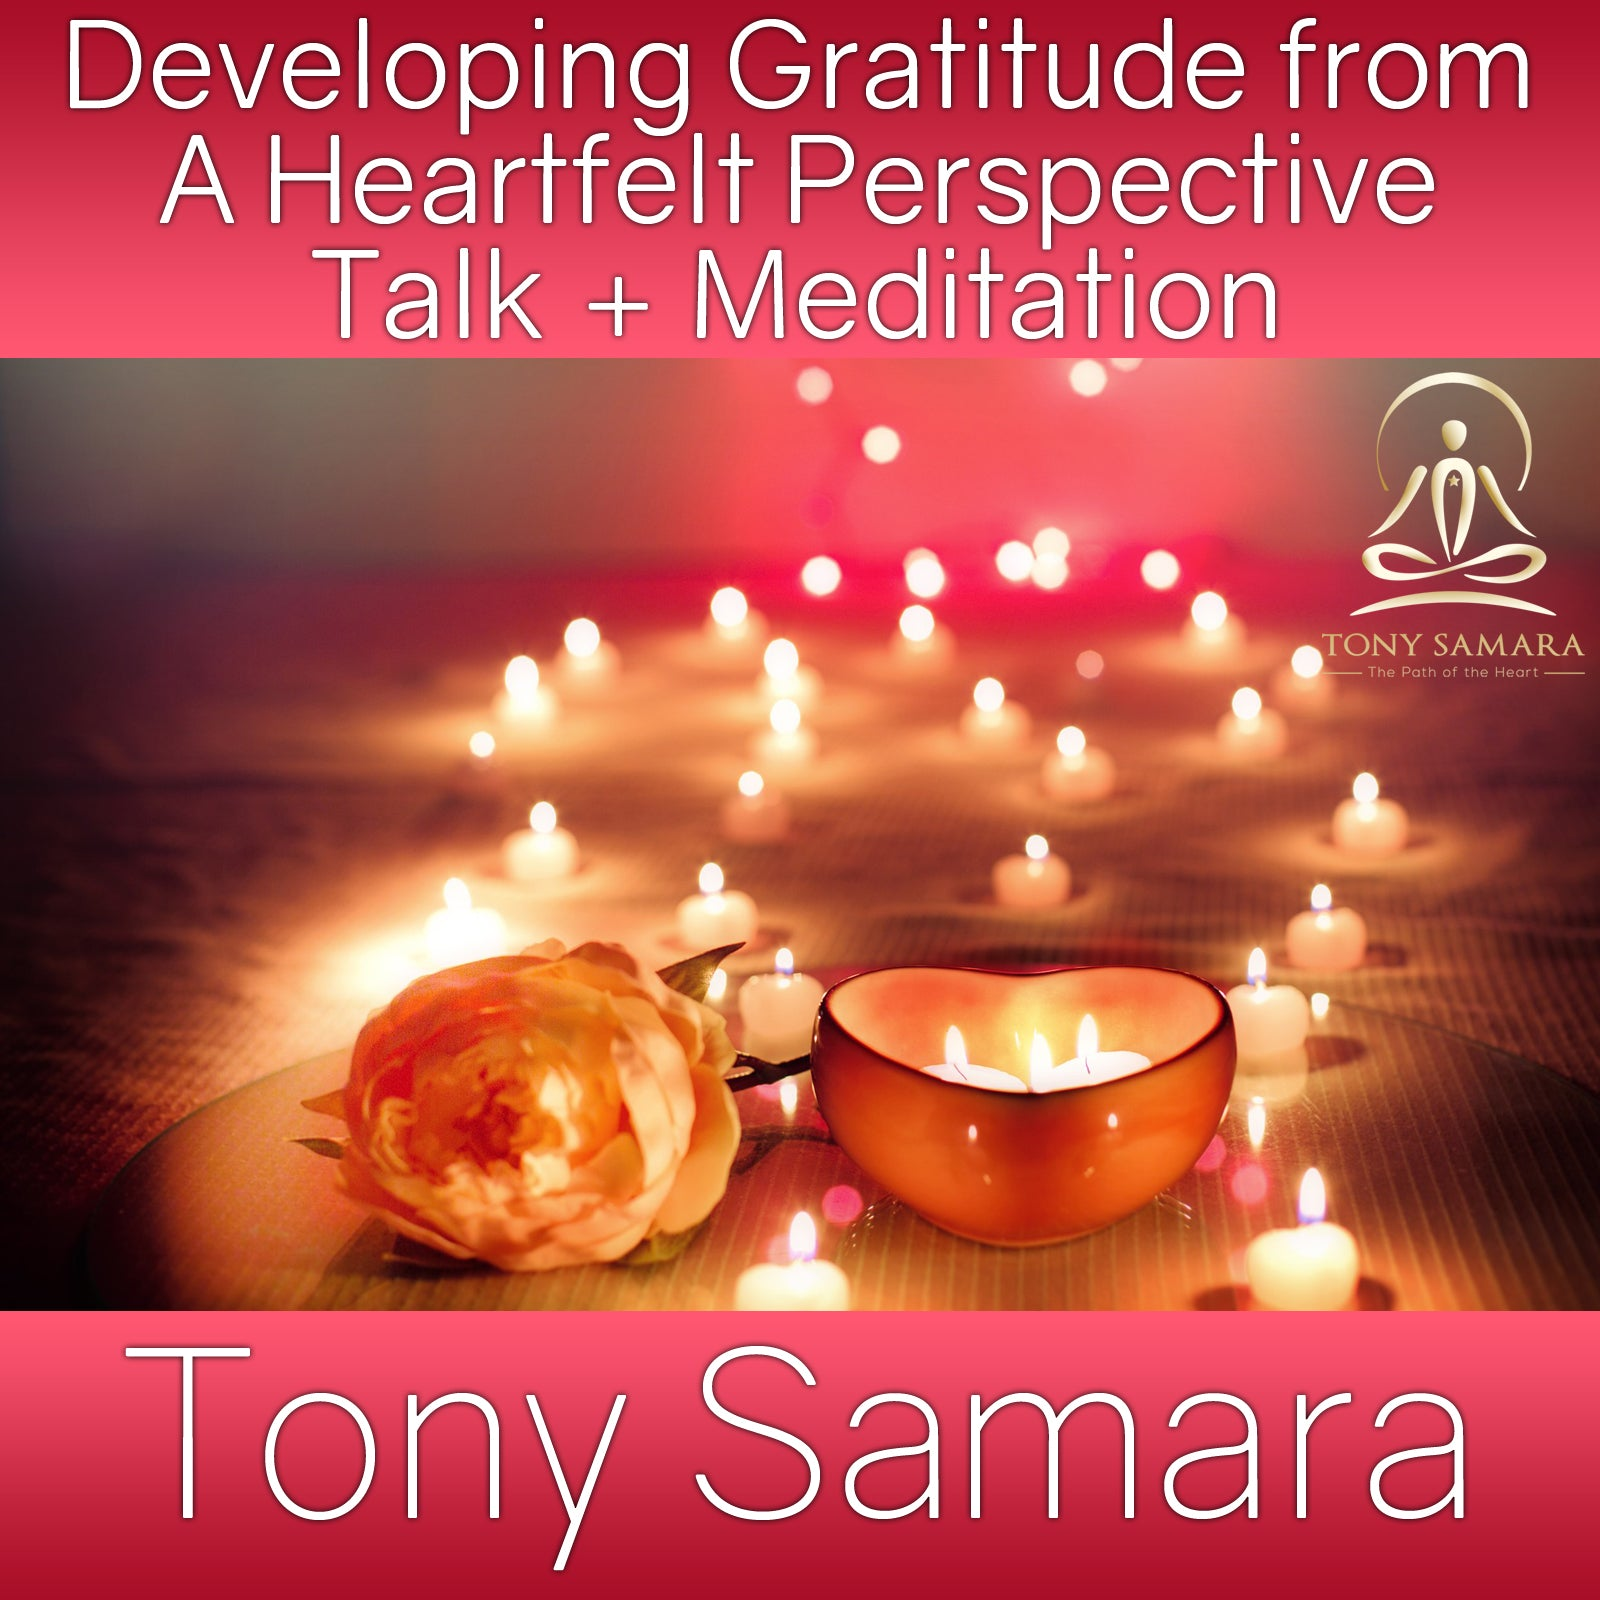 Developing Gratitude from A Heartfelt Perspective Talk + Meditation (MP3 Audio Download)